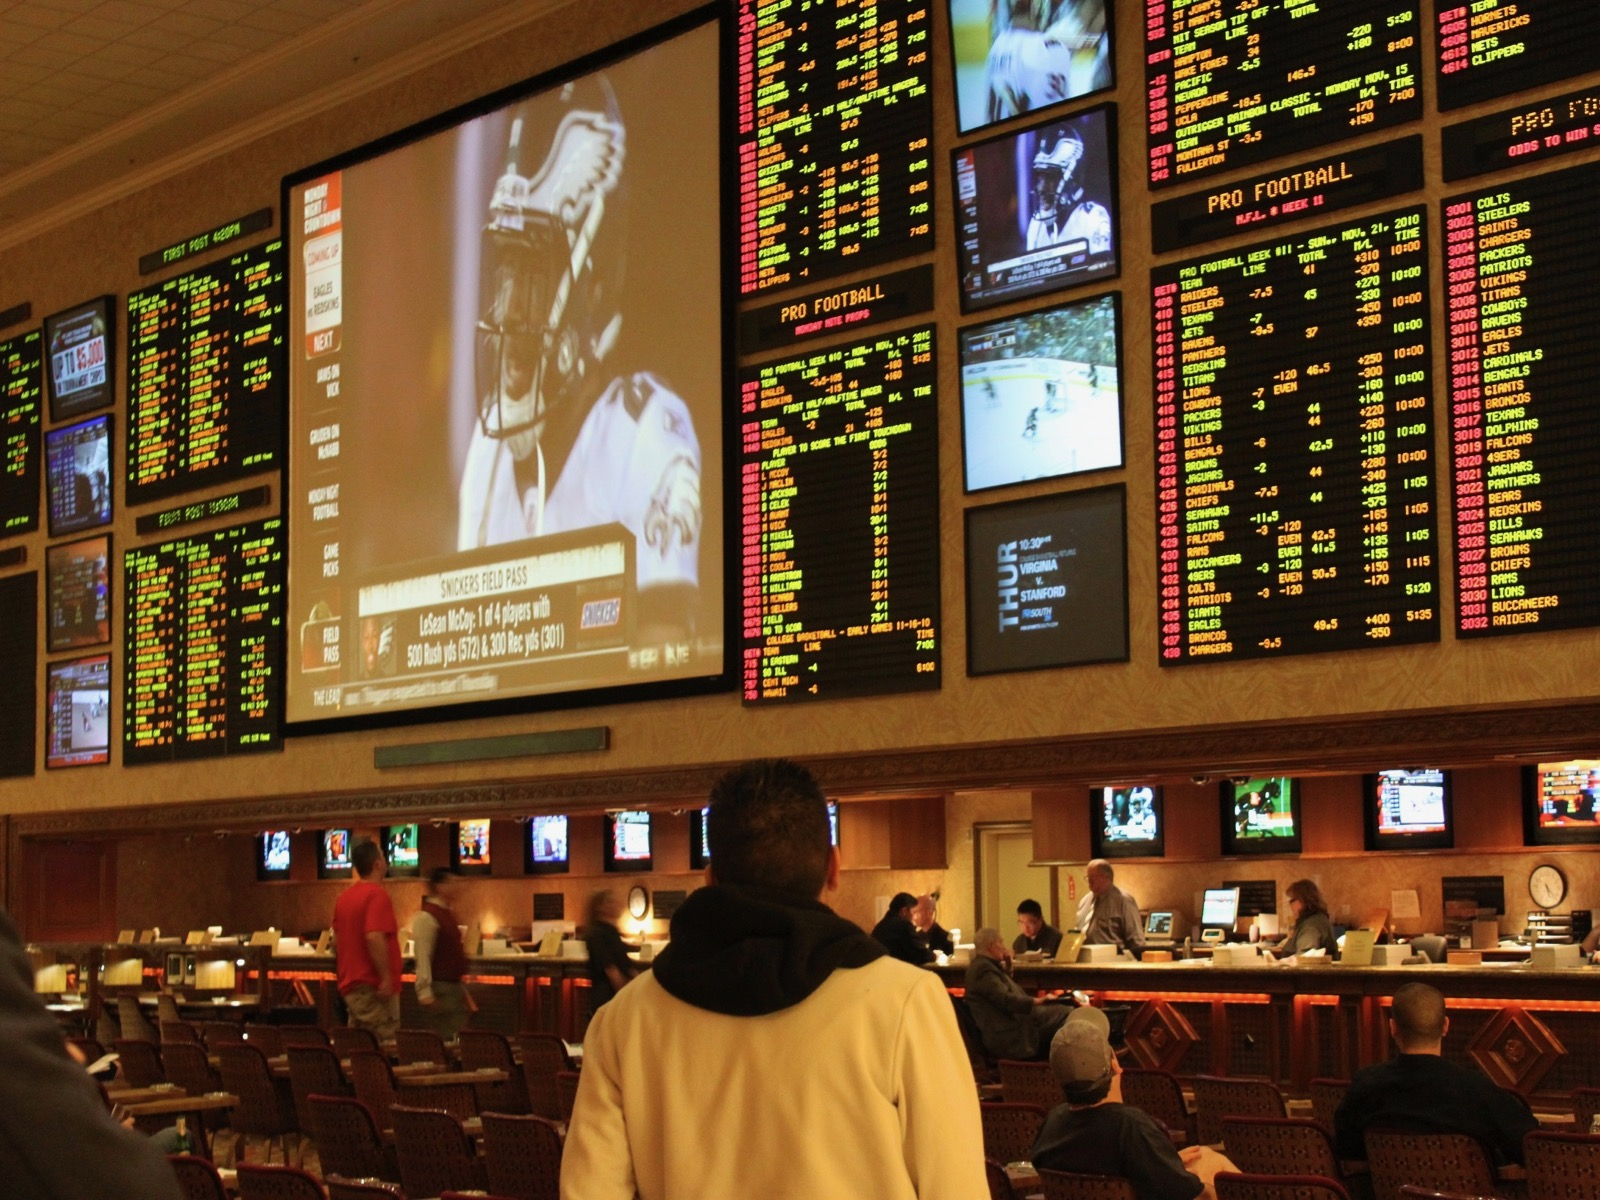 Stateline: Problem gambling a concern as sports betting fever spreads